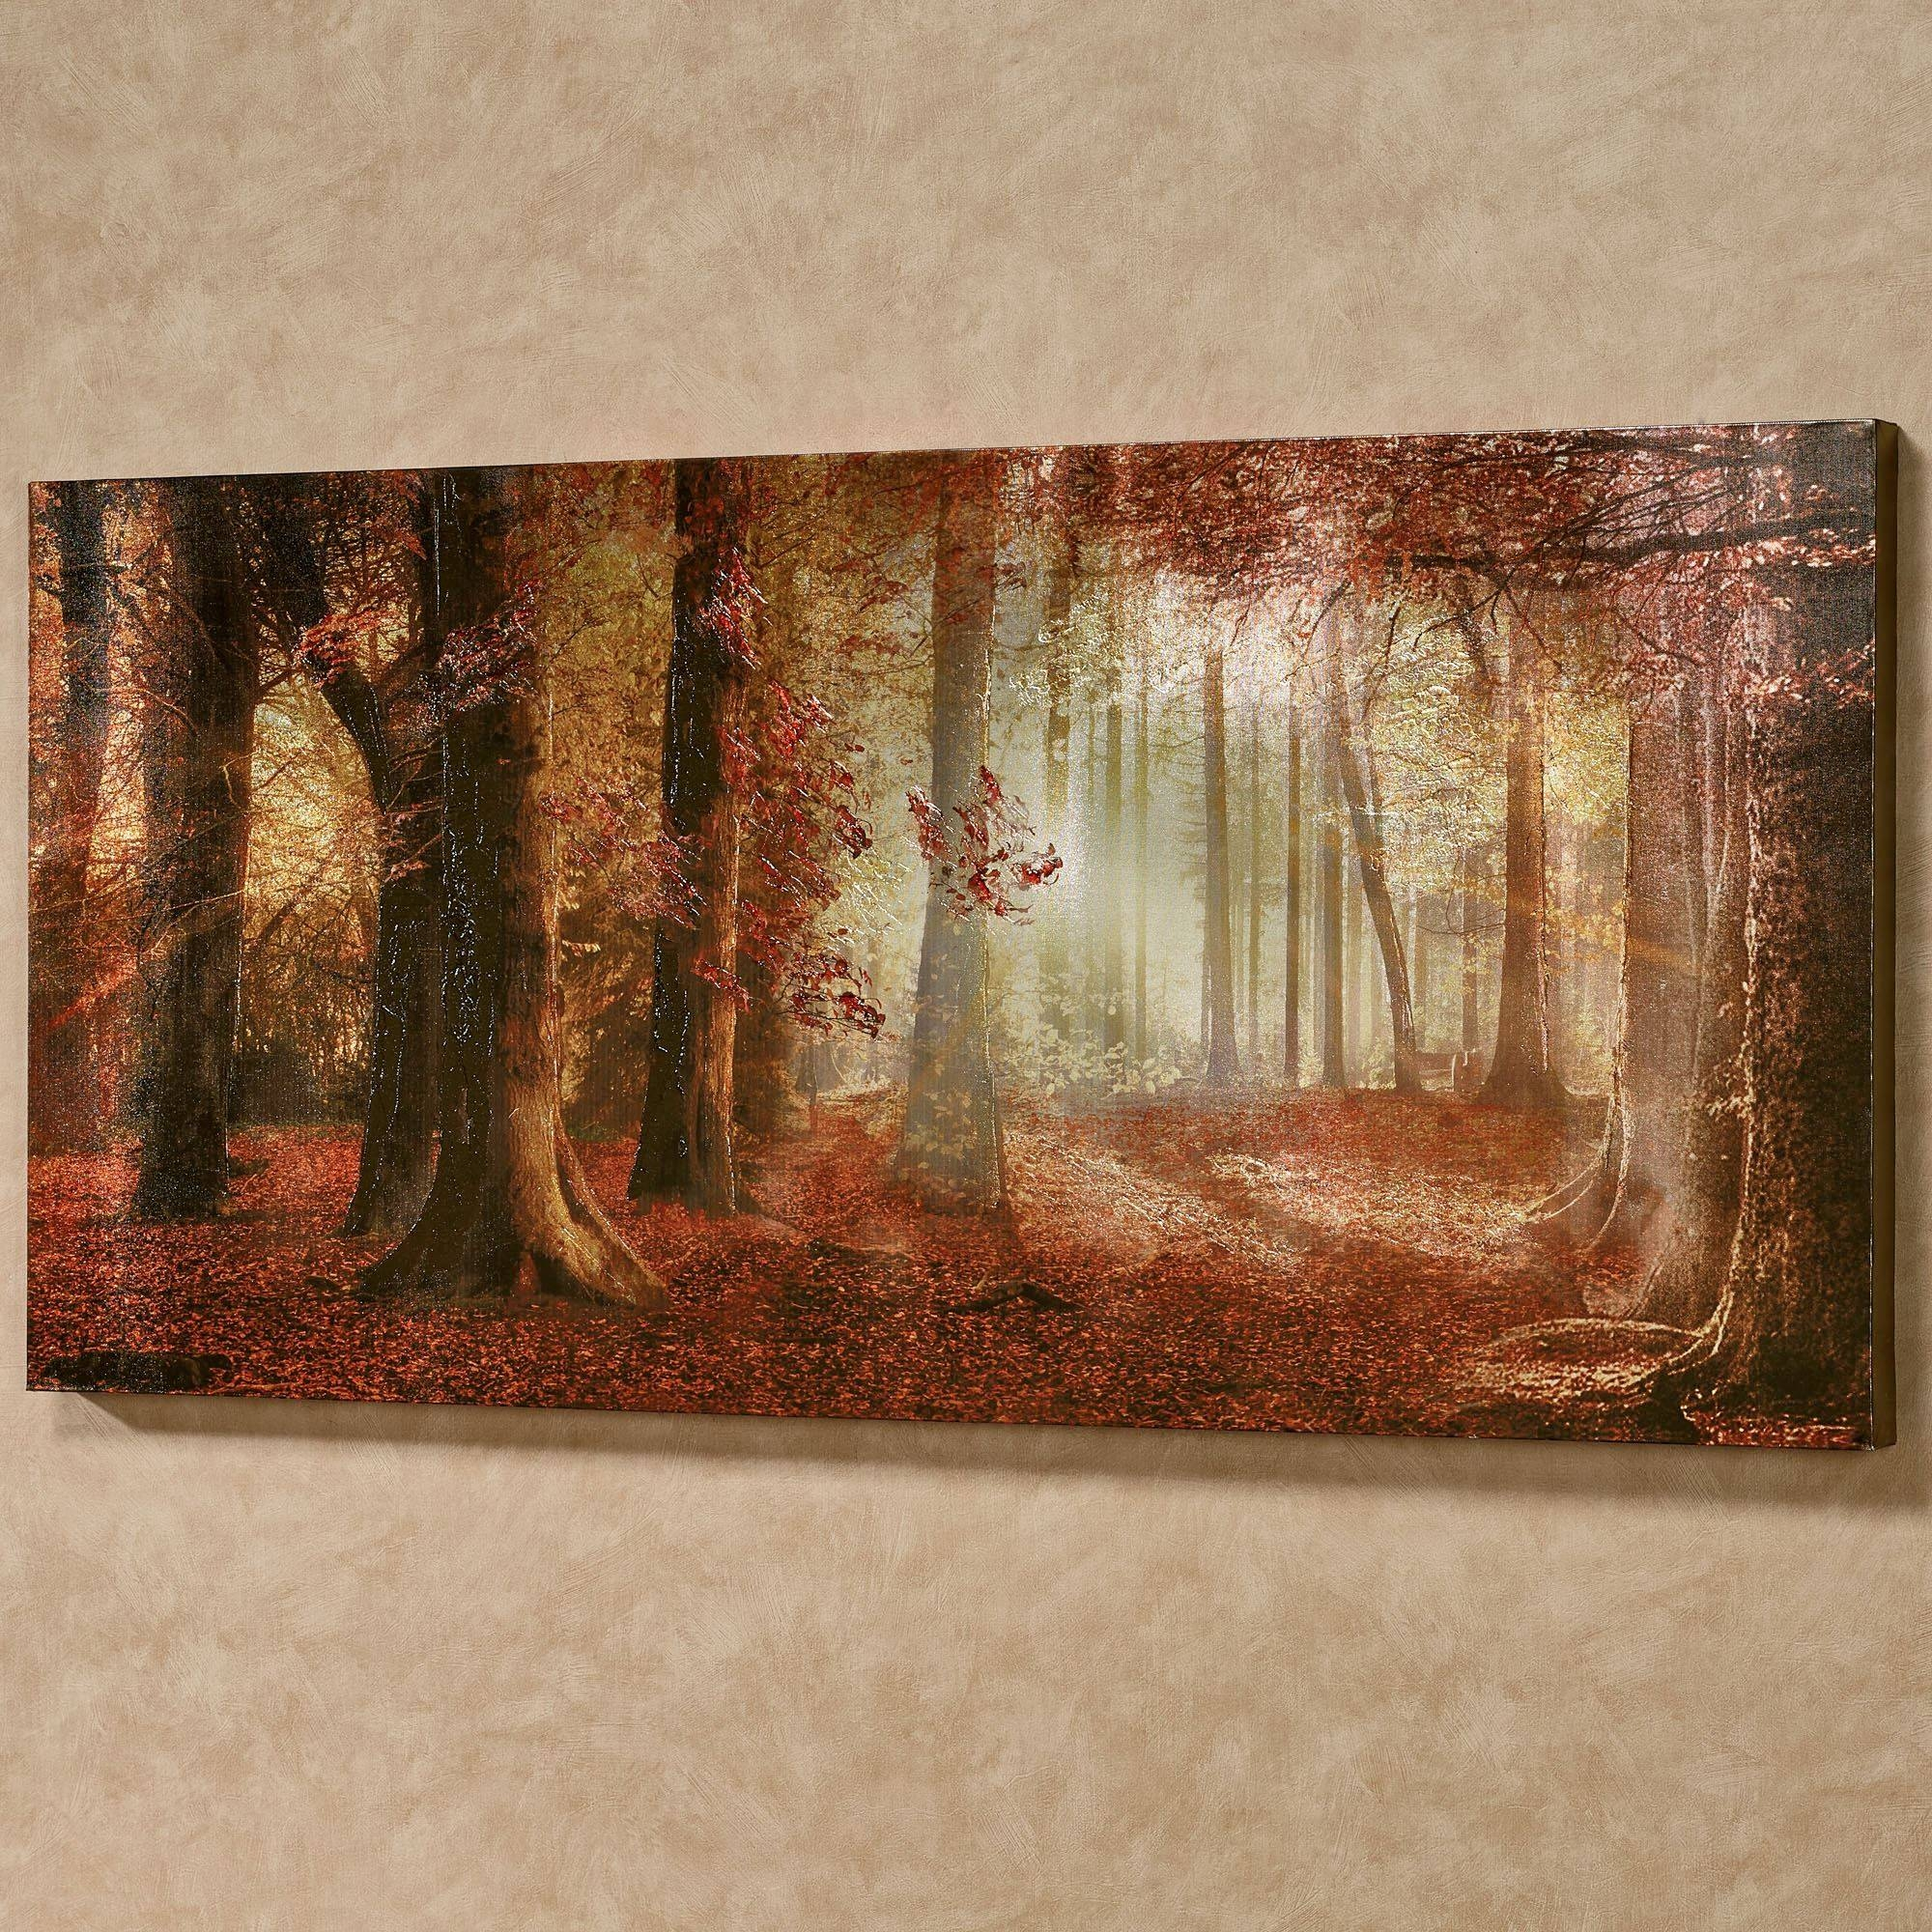 Art, Wall Sculpture, Wall Tapestries, Canvas Art, Framed Prints Inside Latest Autumn  Inspired Wall Art (View 9 of 25)